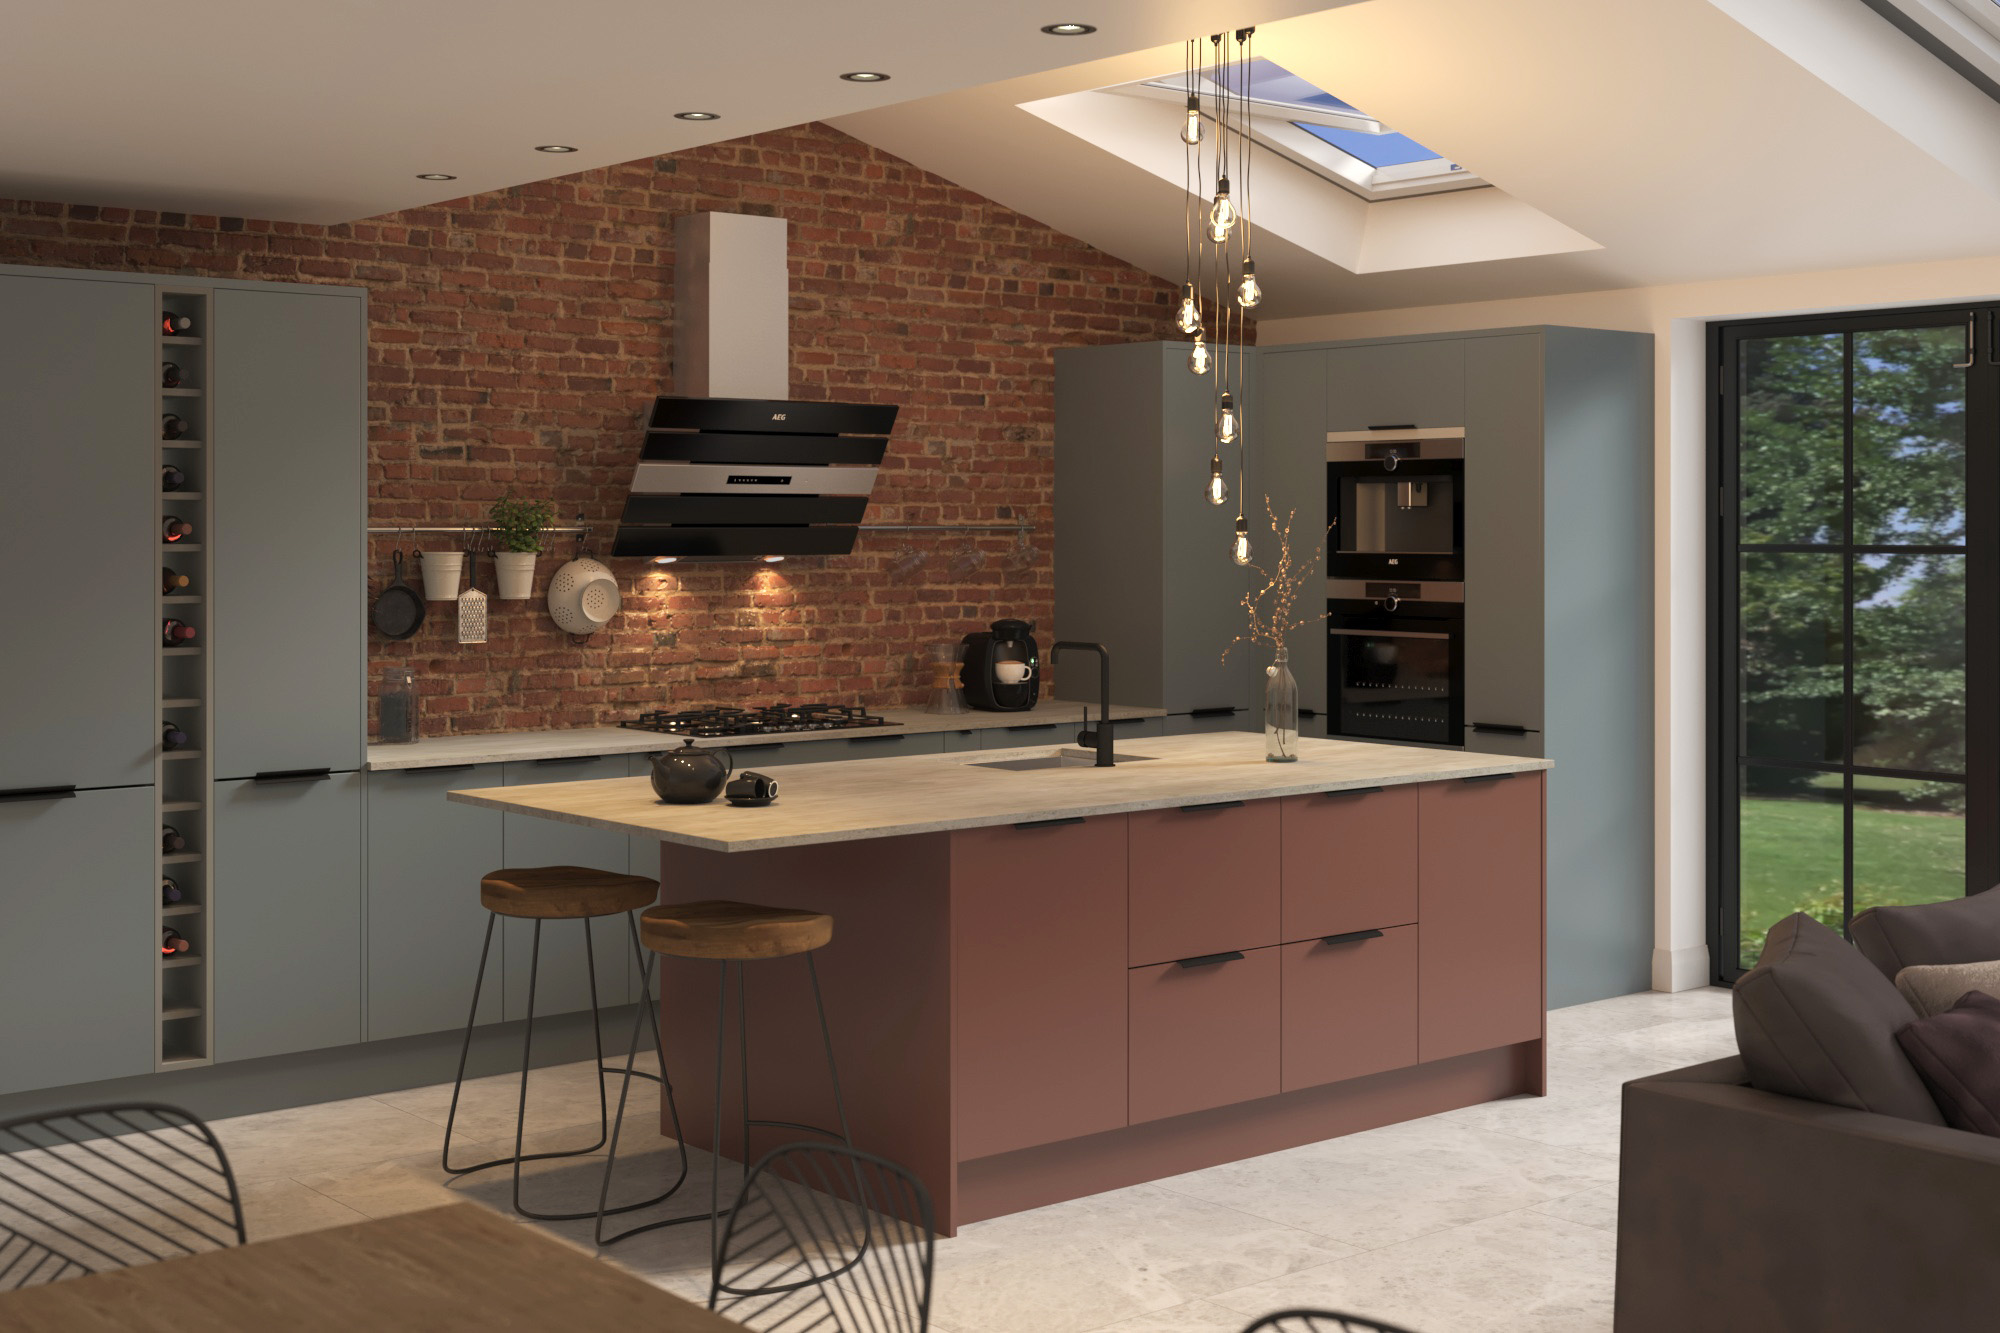 Bespoke painted kitchens